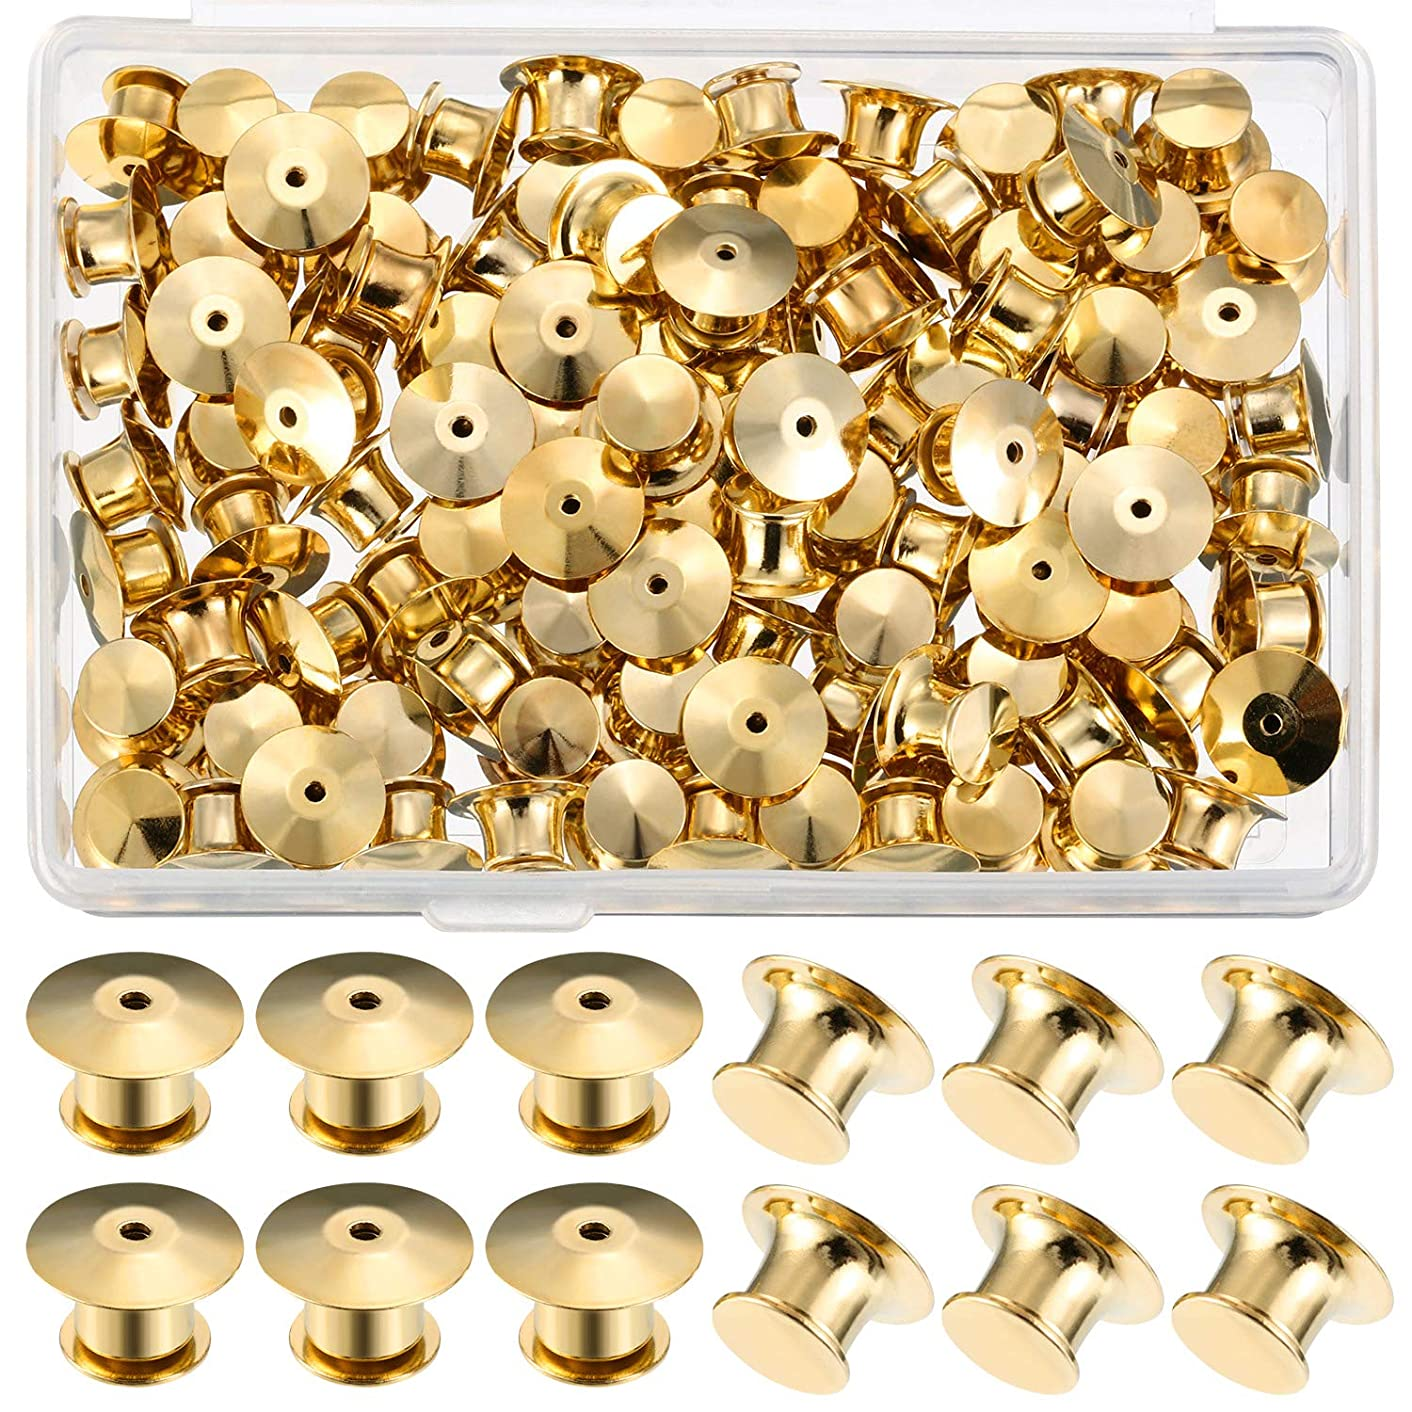 Mudder Locking Pin Keepers Backs, No Tool Required(Gold, 100 Pieces)